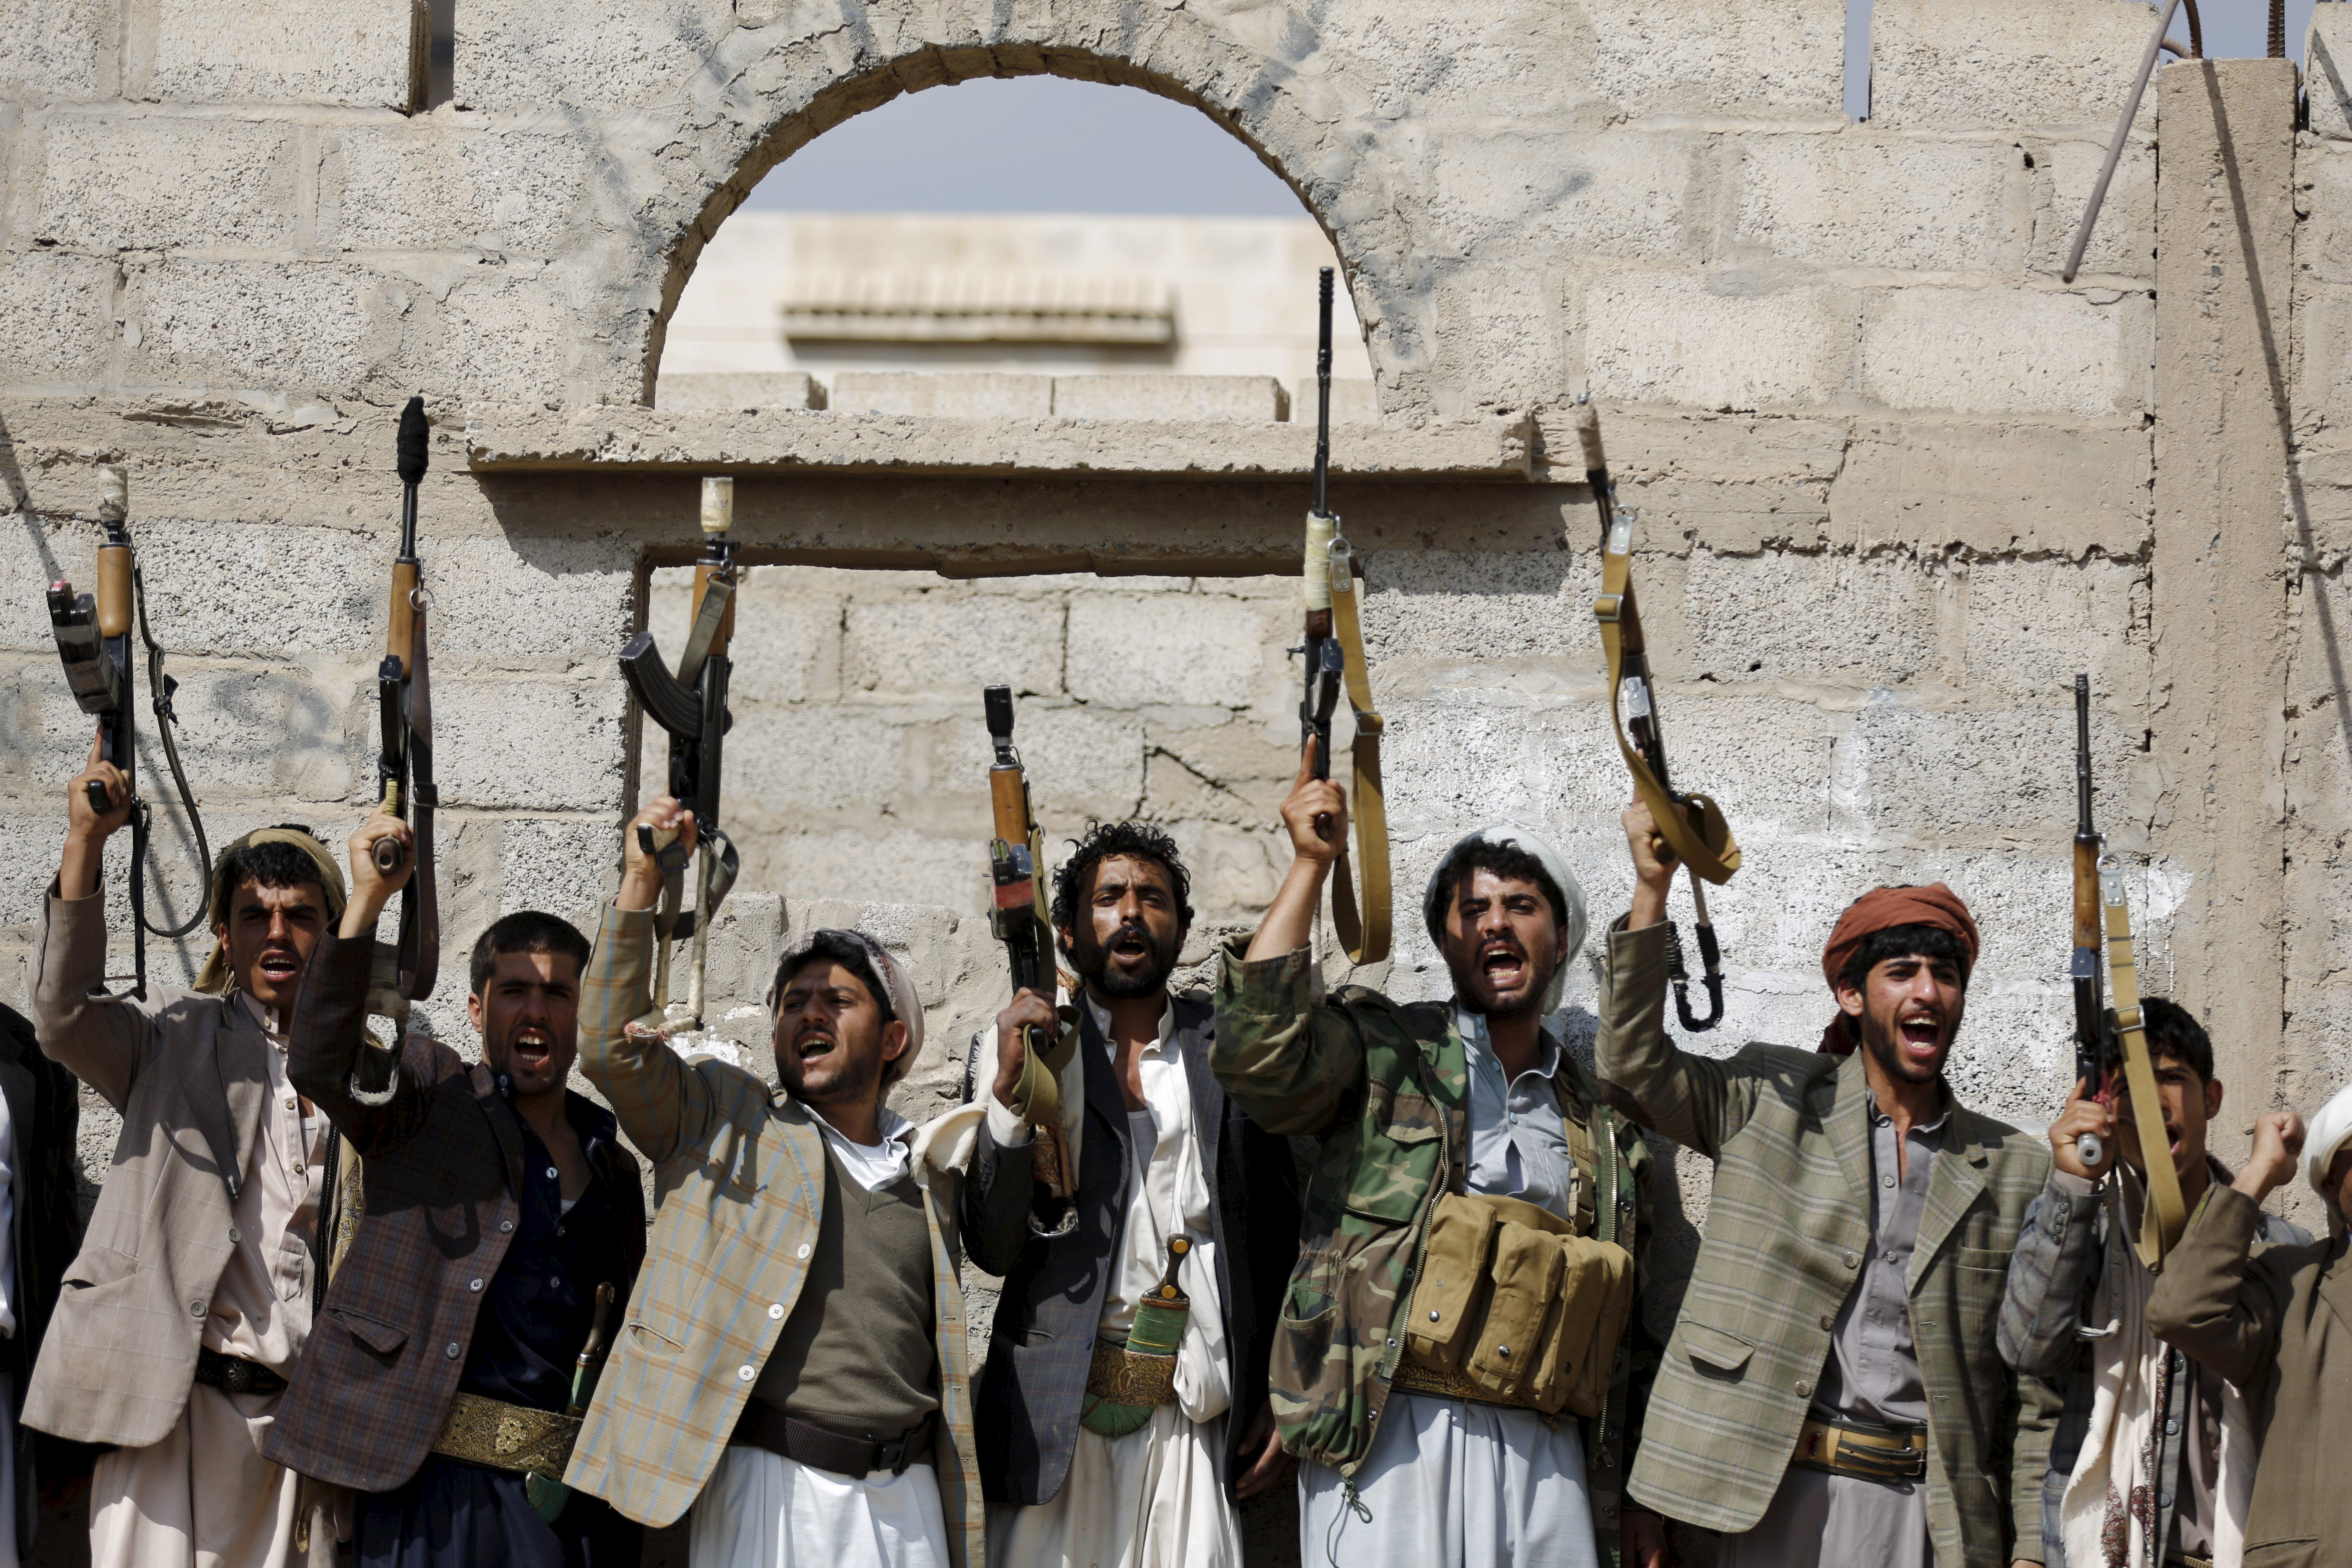 Tribesmen loyal to the Houthi forces shout slogans and raise their weapons during a gathering in Yemen's capital Sana'a on Dec. 15, 2015